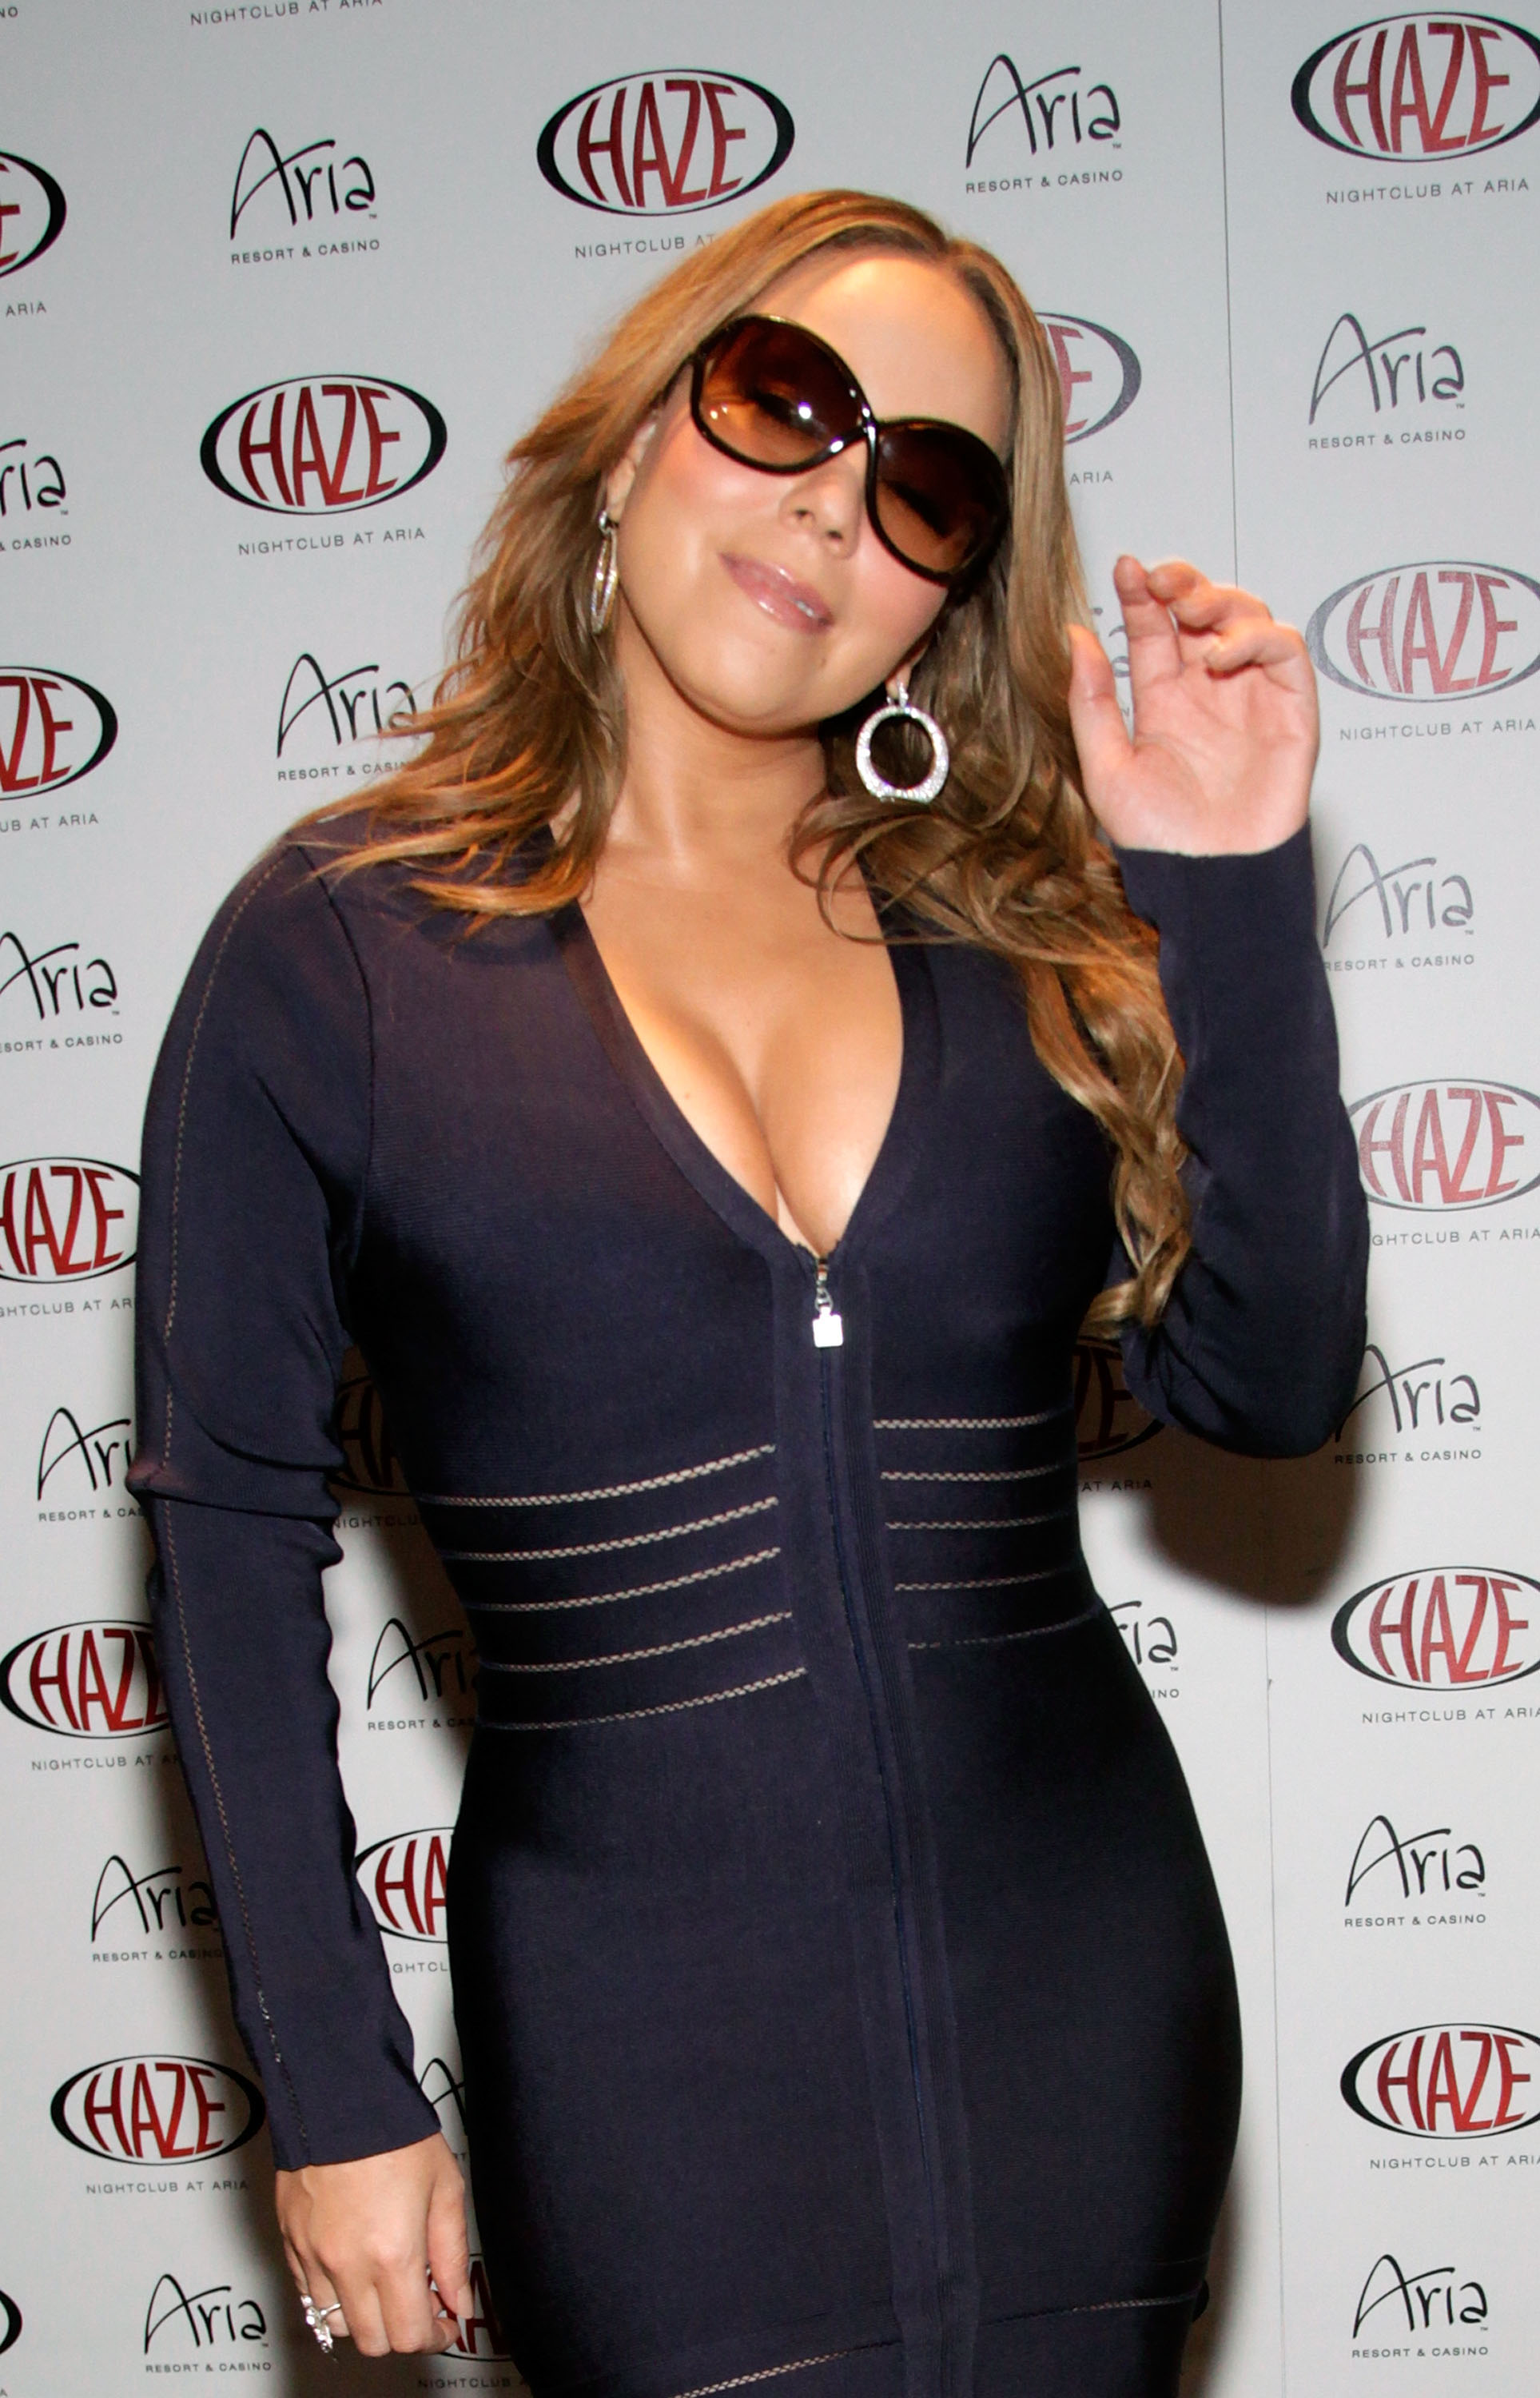 07606_MariahCarey_end_of_tour_party_122_431lo.jpg